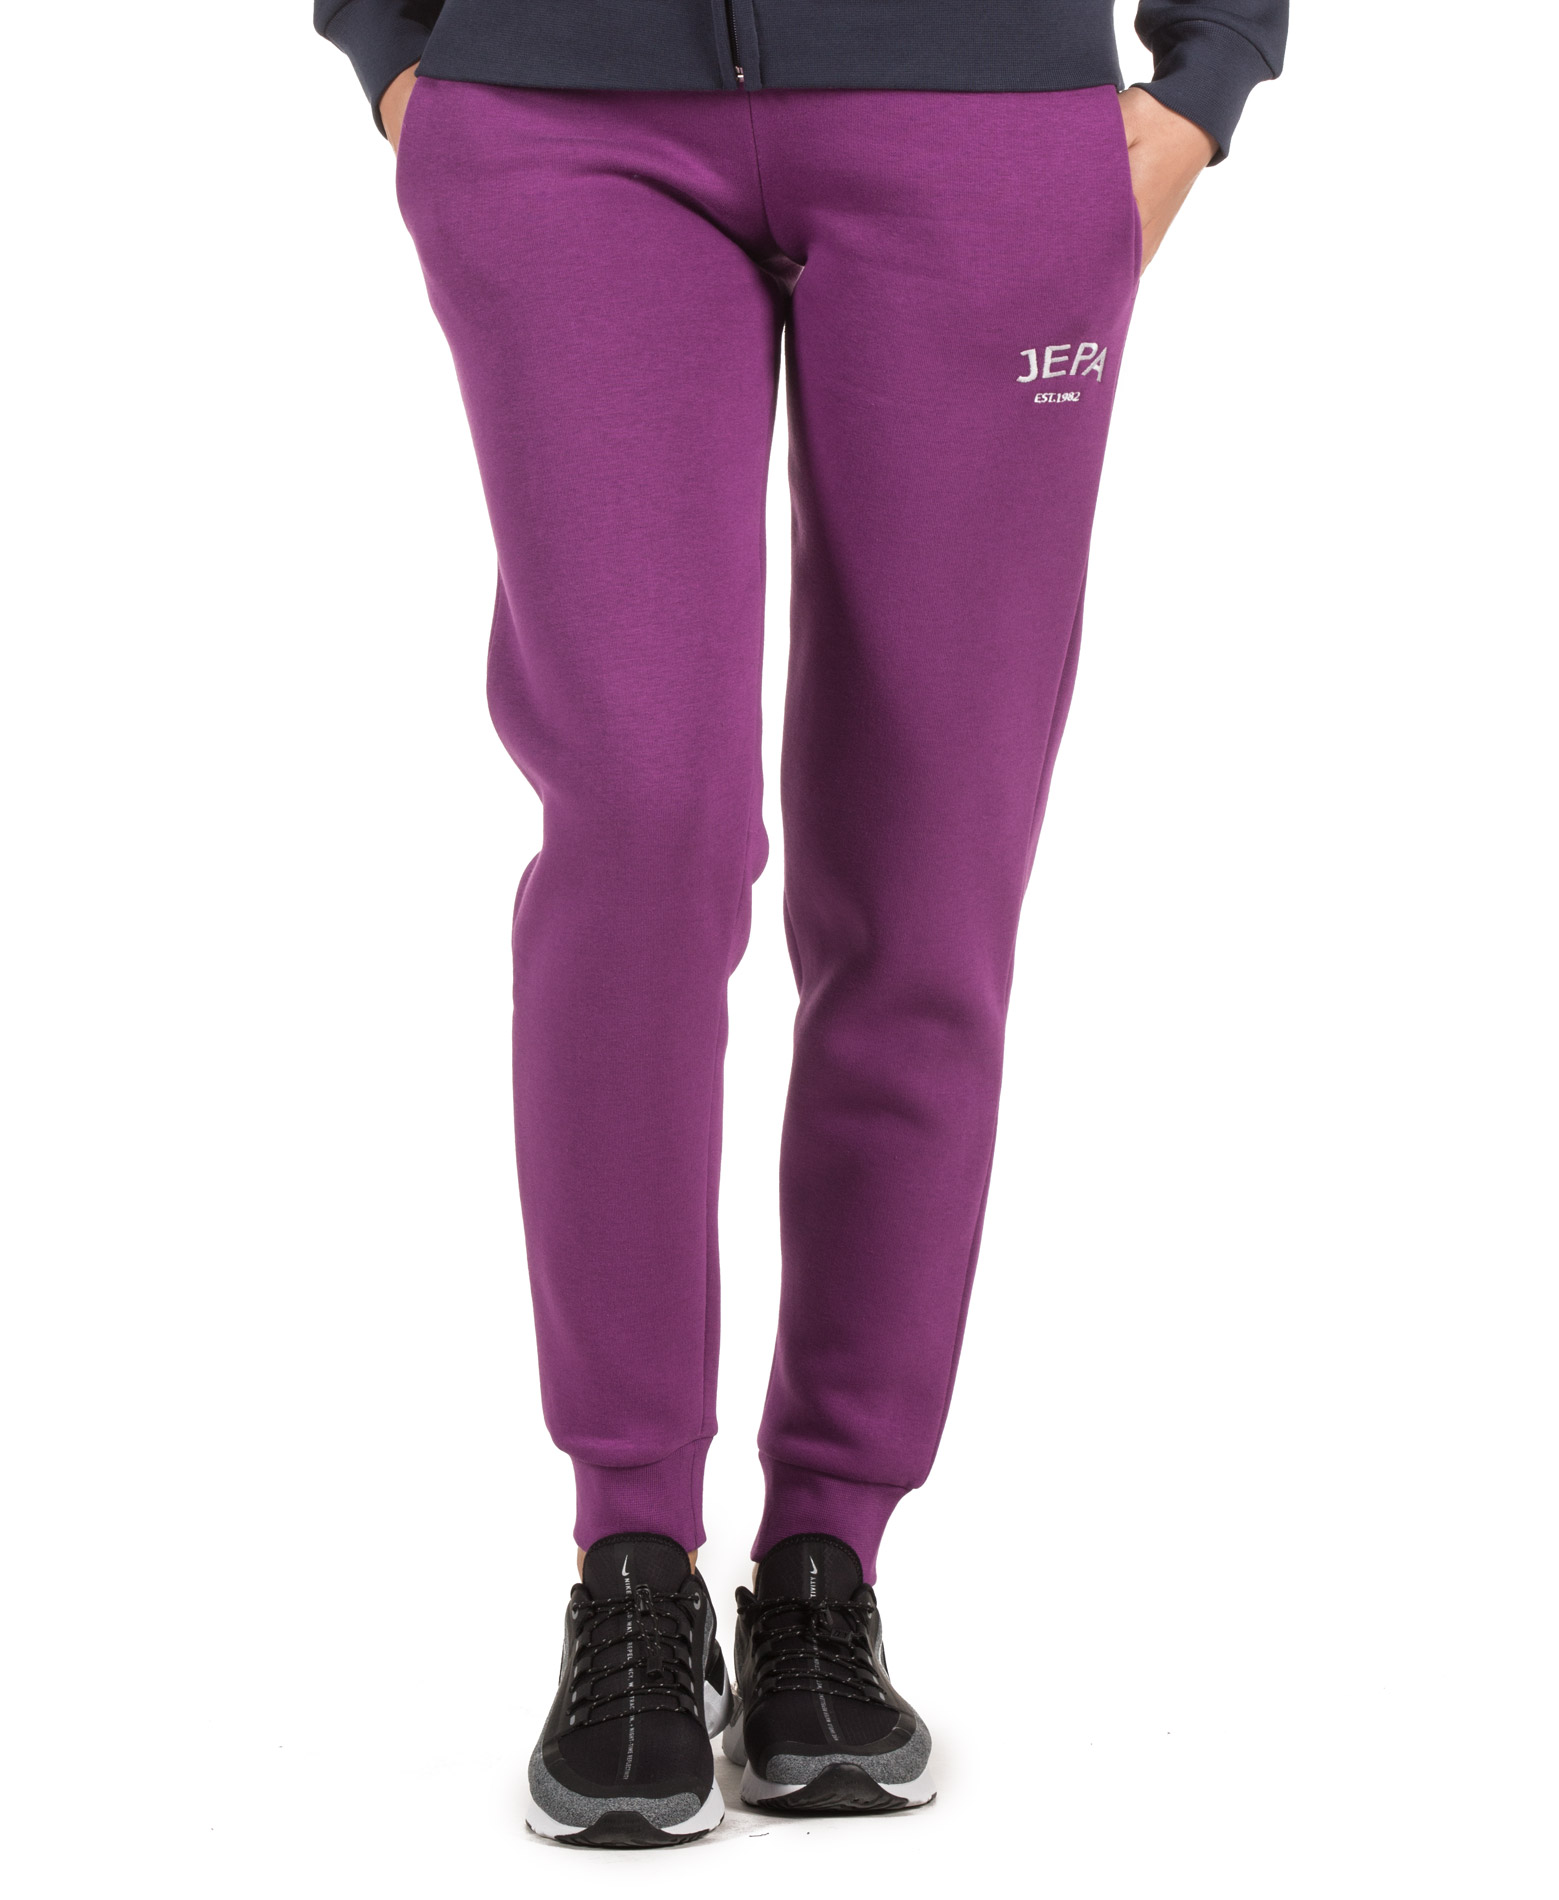 JEPA WMN JOGGING PANTS WITH EMBROIDERY 27-28022-PURPLE Μωβ